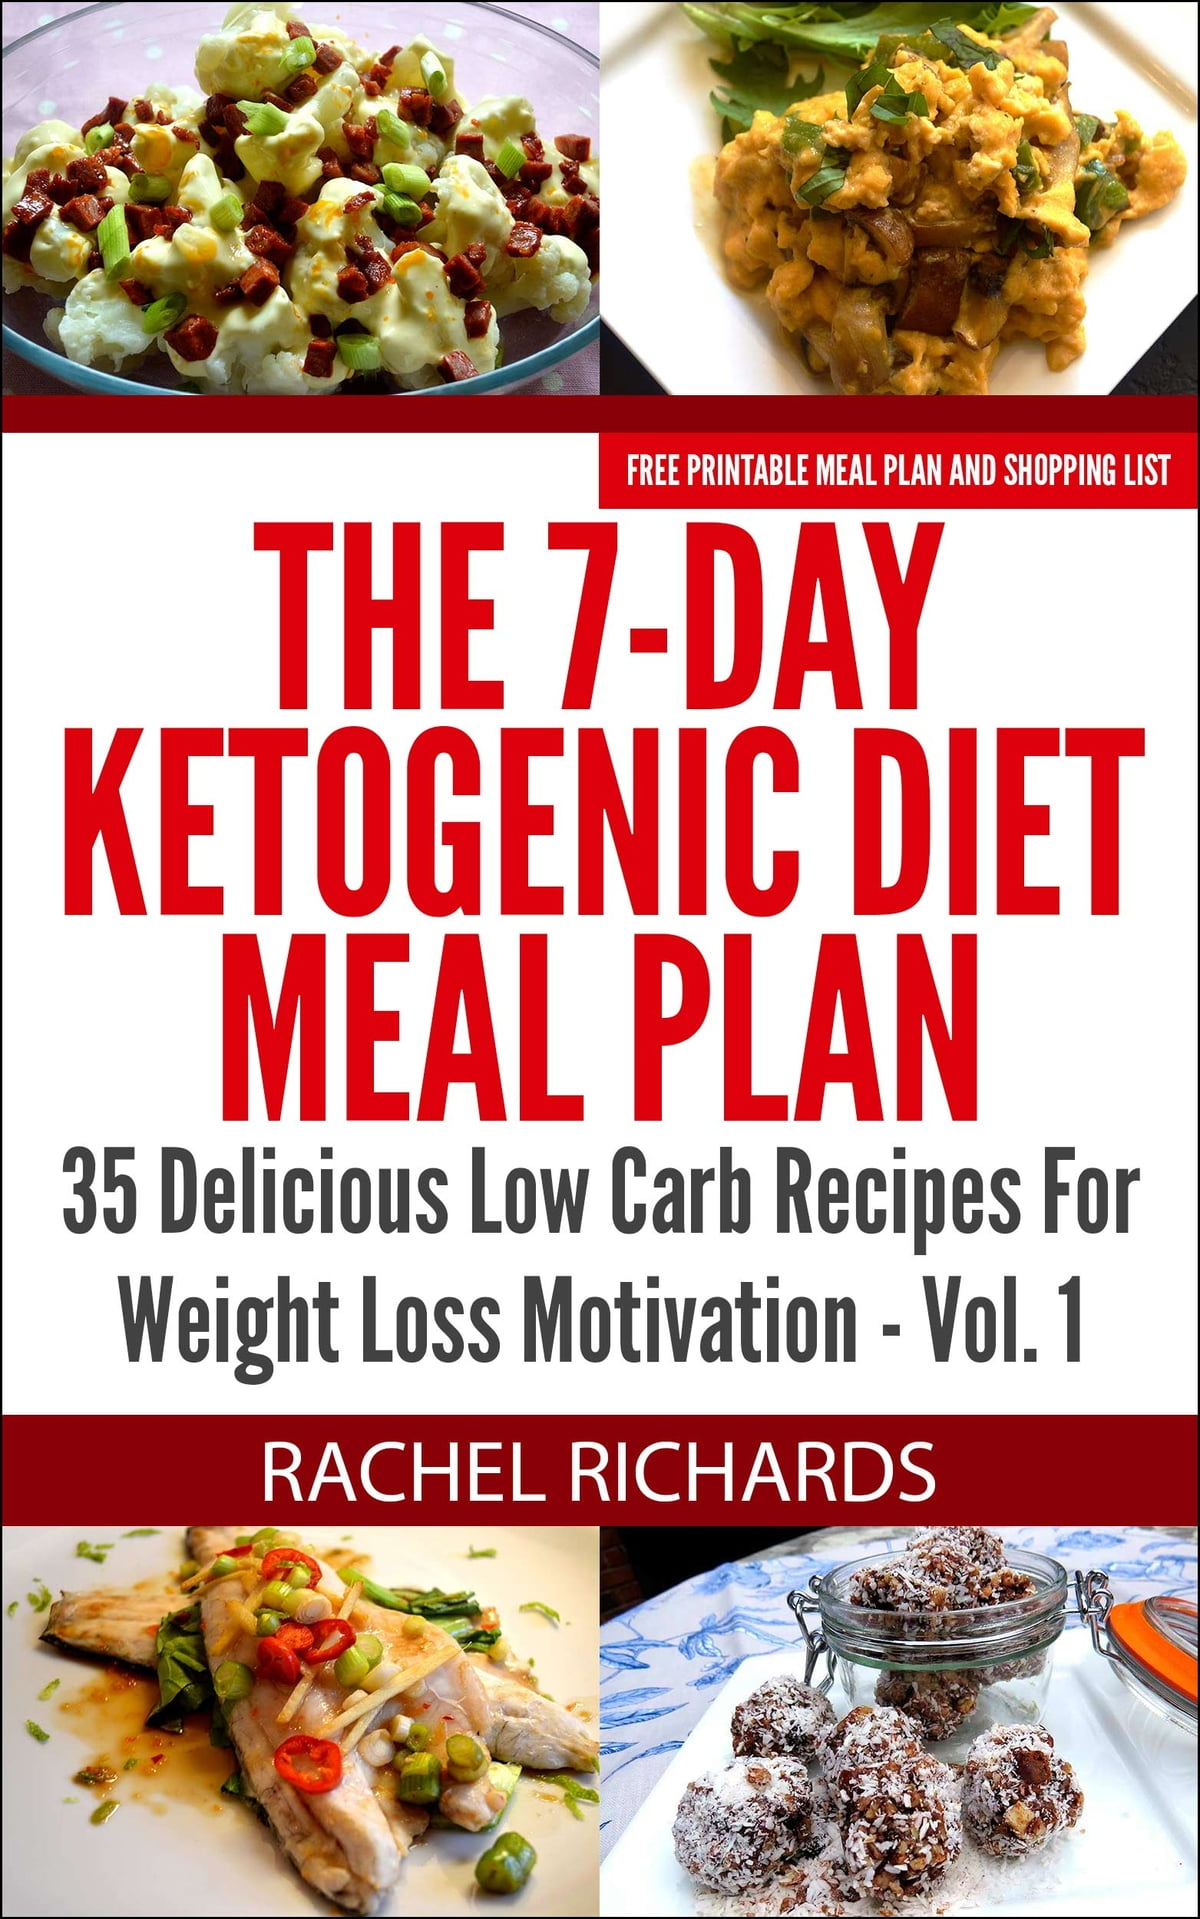 The 7-Day Ketogenic Diet Meal Plan: 35 Delicious Low Carb ...